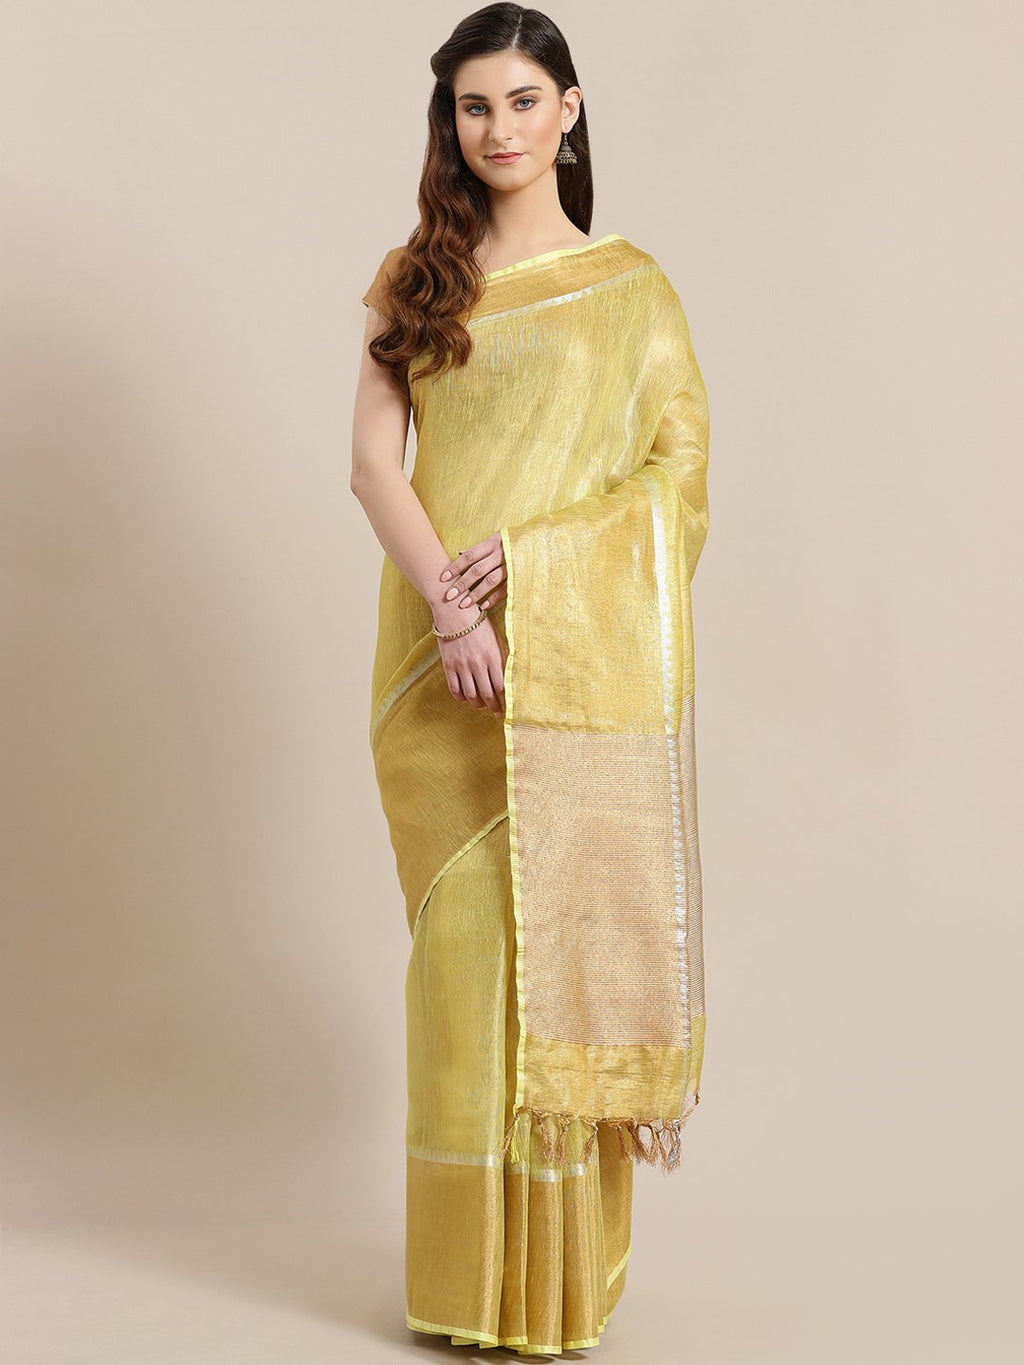 Mustard Yellow Golden Handwoven Dual-Tone Saree-Saree-Kalakari India-ALBGSA0016-Hand Woven, Sarees, Sustainable Fabrics, Tissue, Traditional Weave-[Linen,Ethnic,wear,Fashionista,Handloom,Handicraft,Indigo,blockprint,block,print,Cotton,Chanderi,Blue, latest,classy,party,bollywood,trendy,summer,style,traditional,formal,elegant,unique,style,hand,block,print, dabu,booti,gift,present,glamorous,affordable,collectible,Sari,Saree,printed, holi, Diwali, birthday, anniversary, sustainable, organic, scarf,